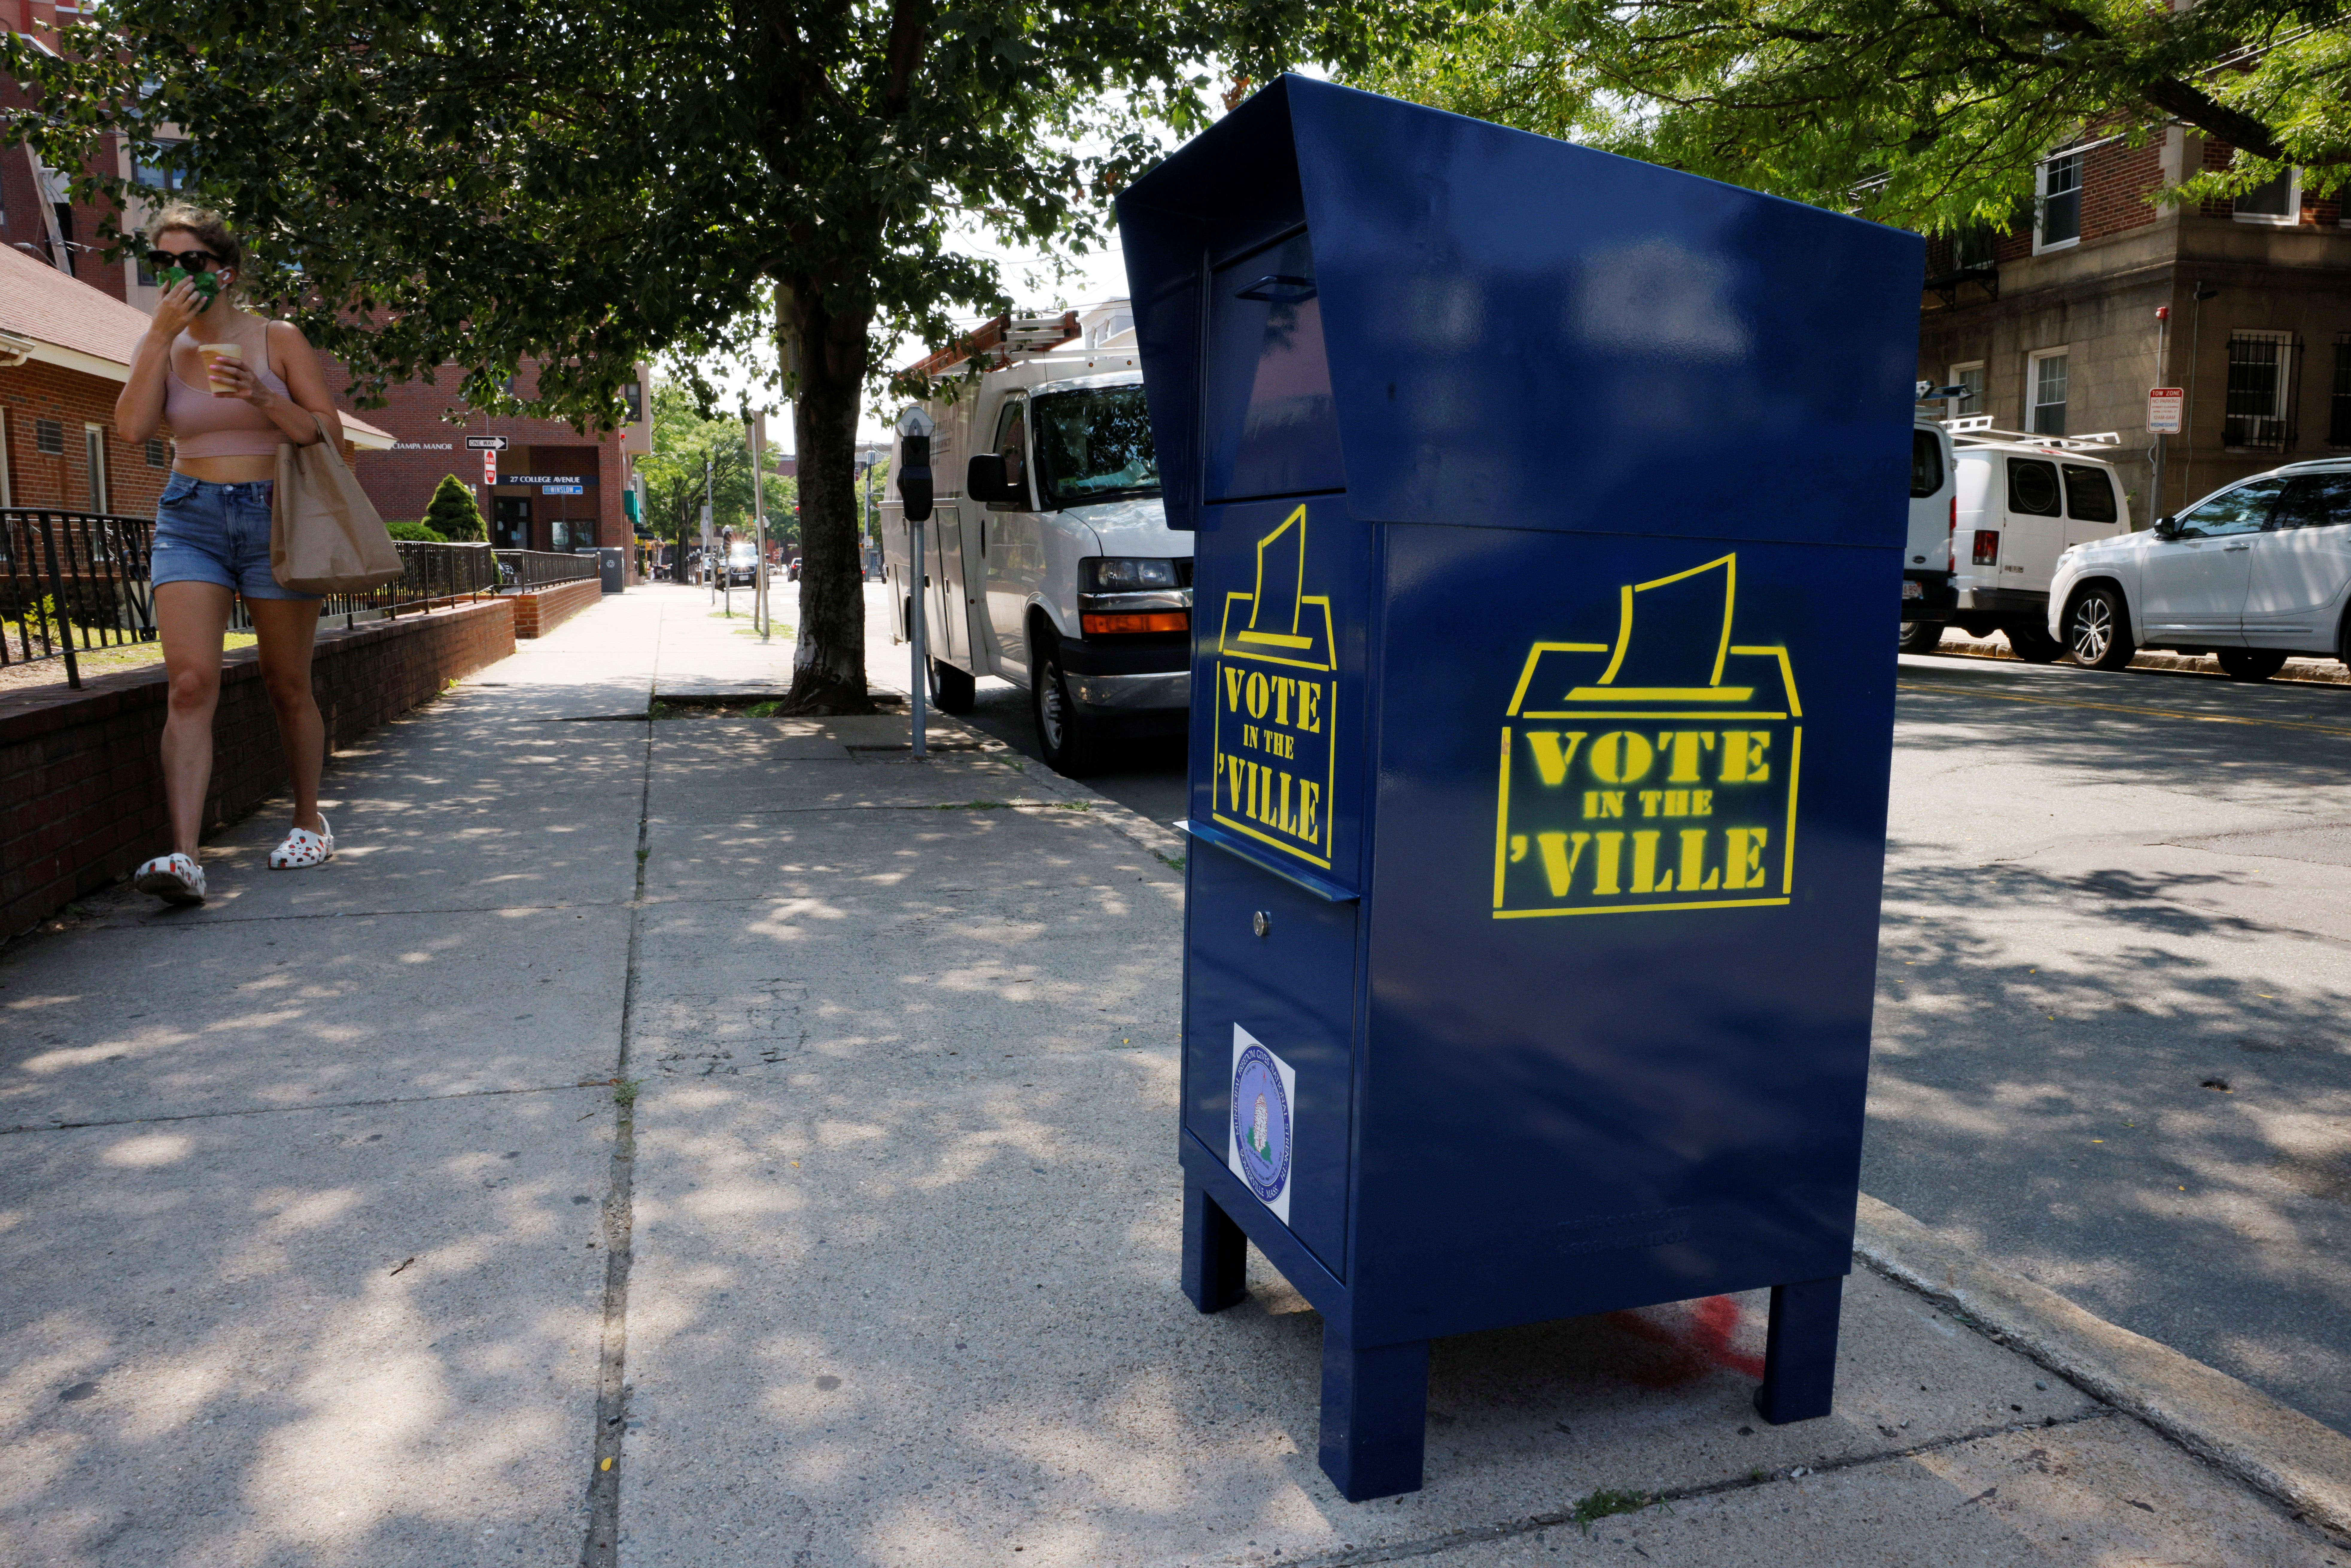 A box to drop off ballots stands on a sidewalk in Somerville. (Reuters)